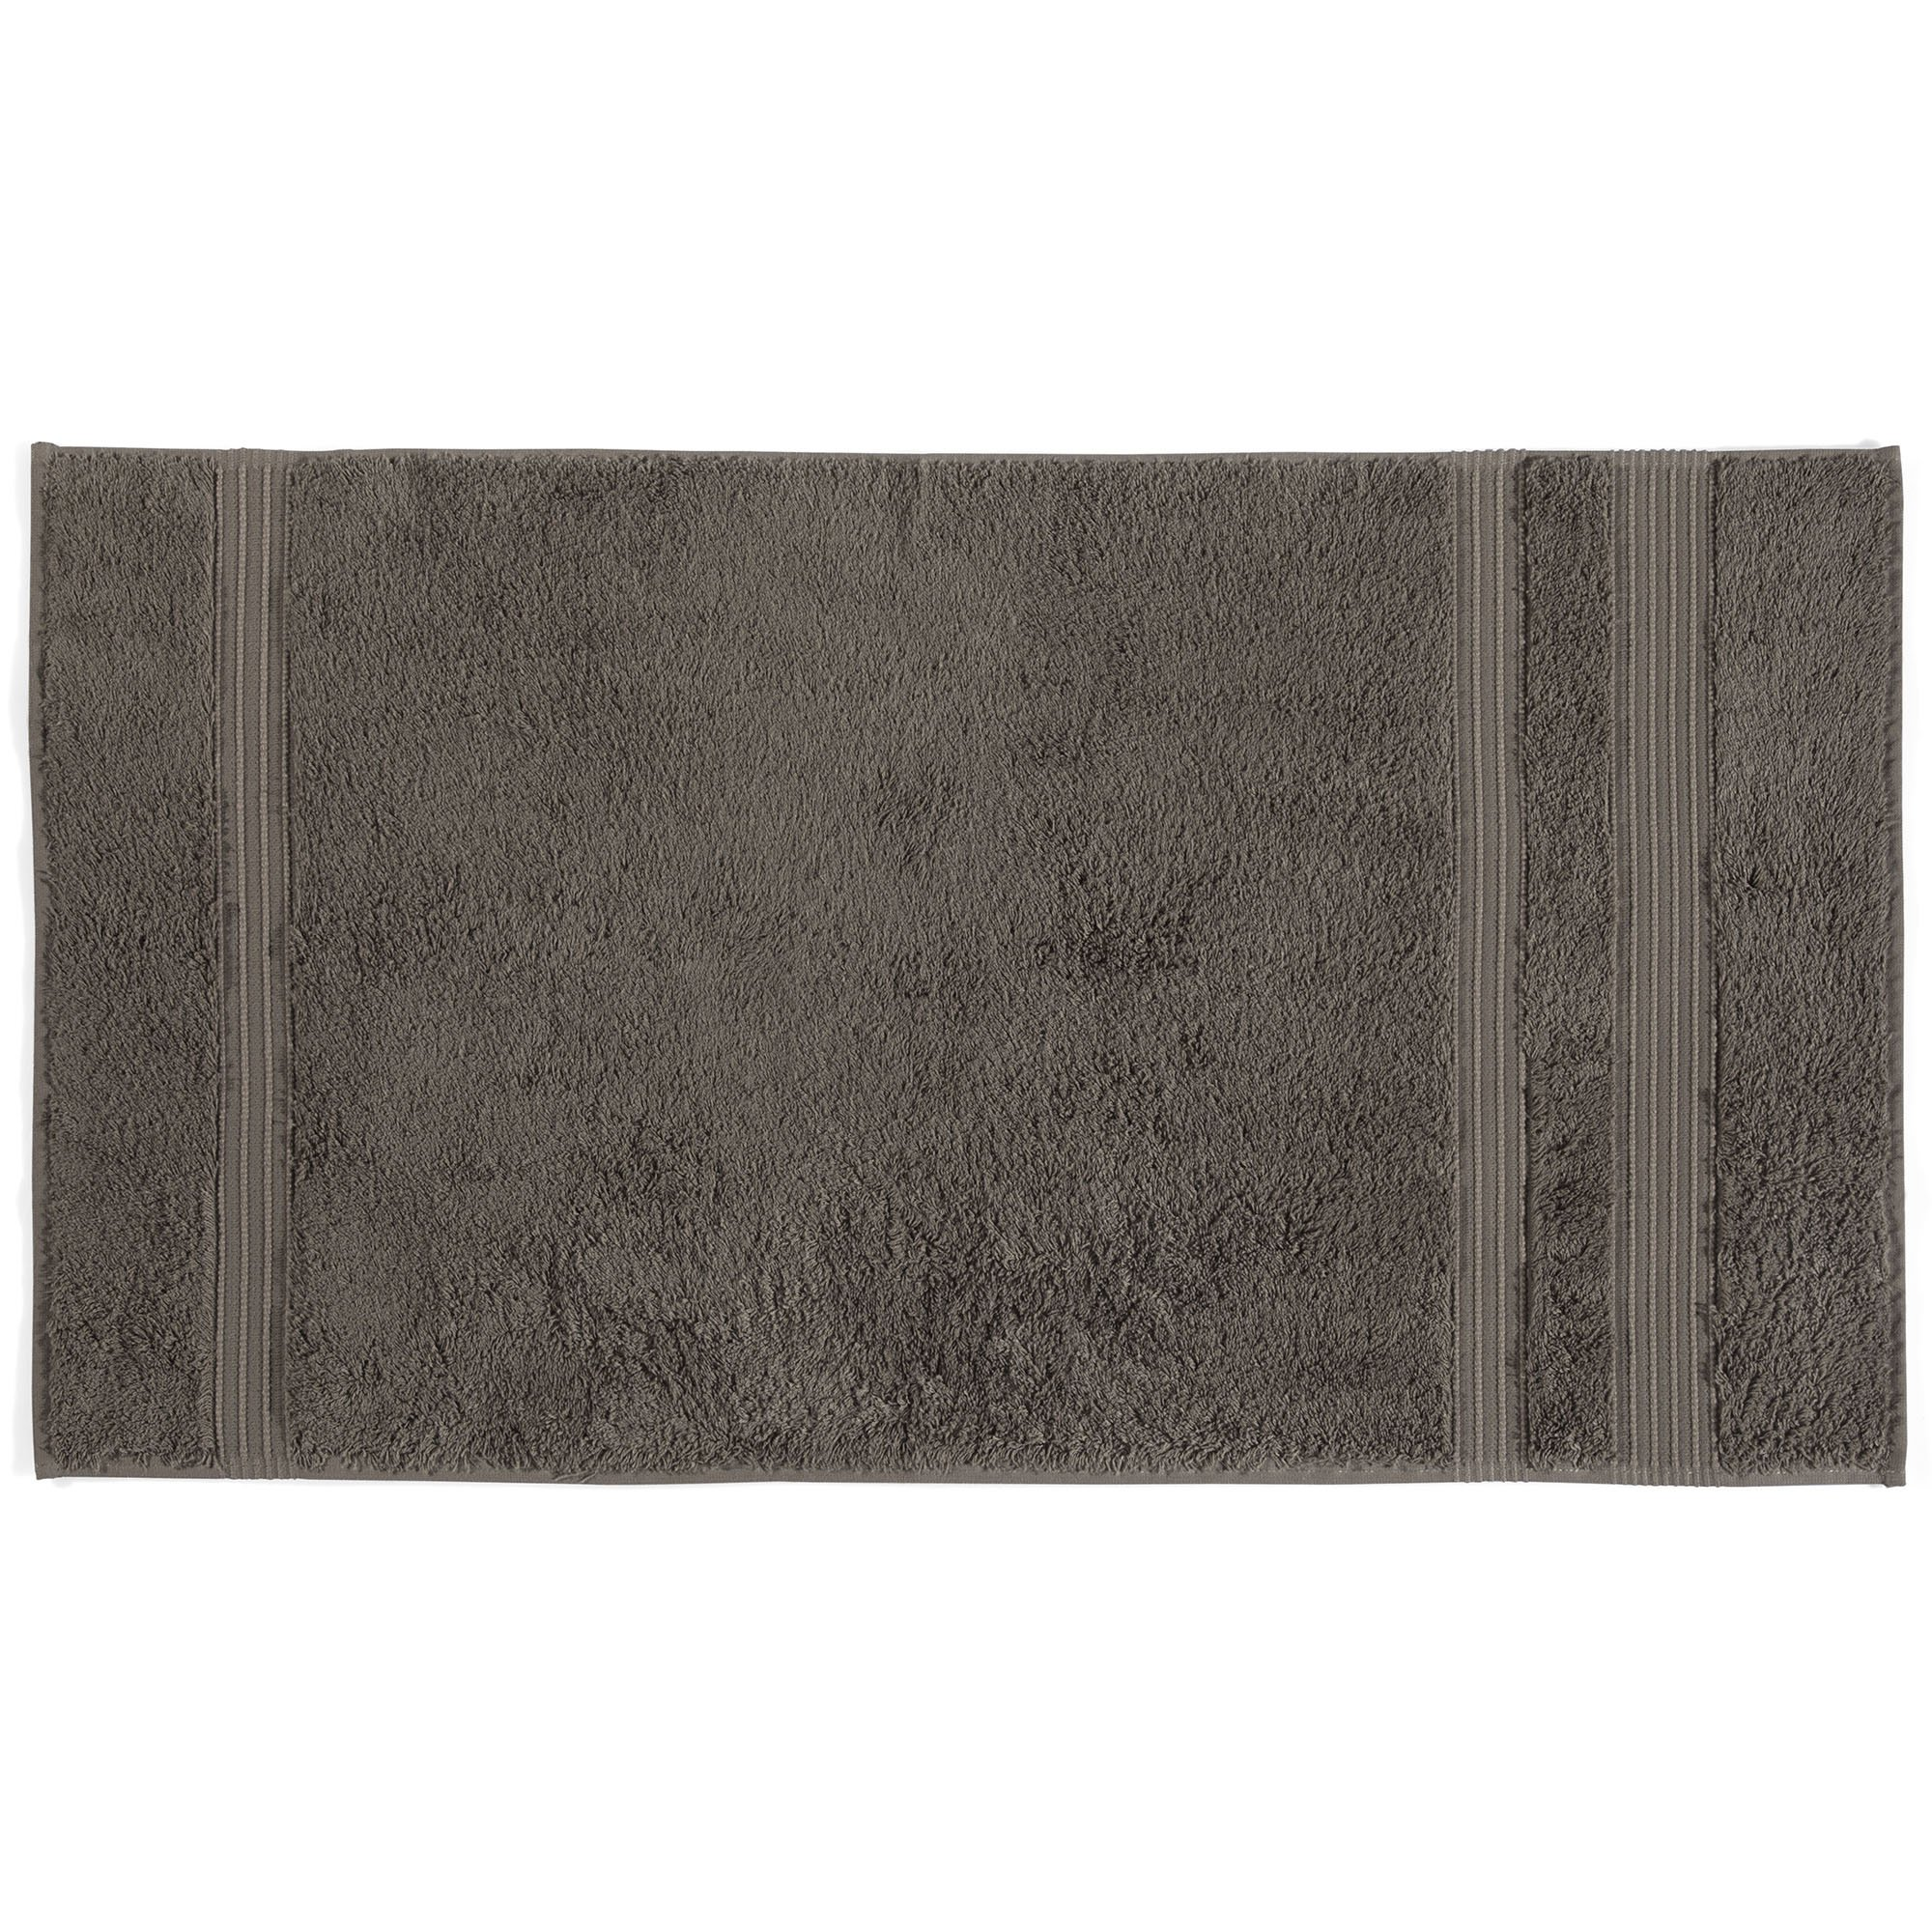 Premium Luxury Hotel & Spa London Bambou Towel Set 12x20 inch (12 Piece) (Chestnut) by Casual Avenue (Image #1)